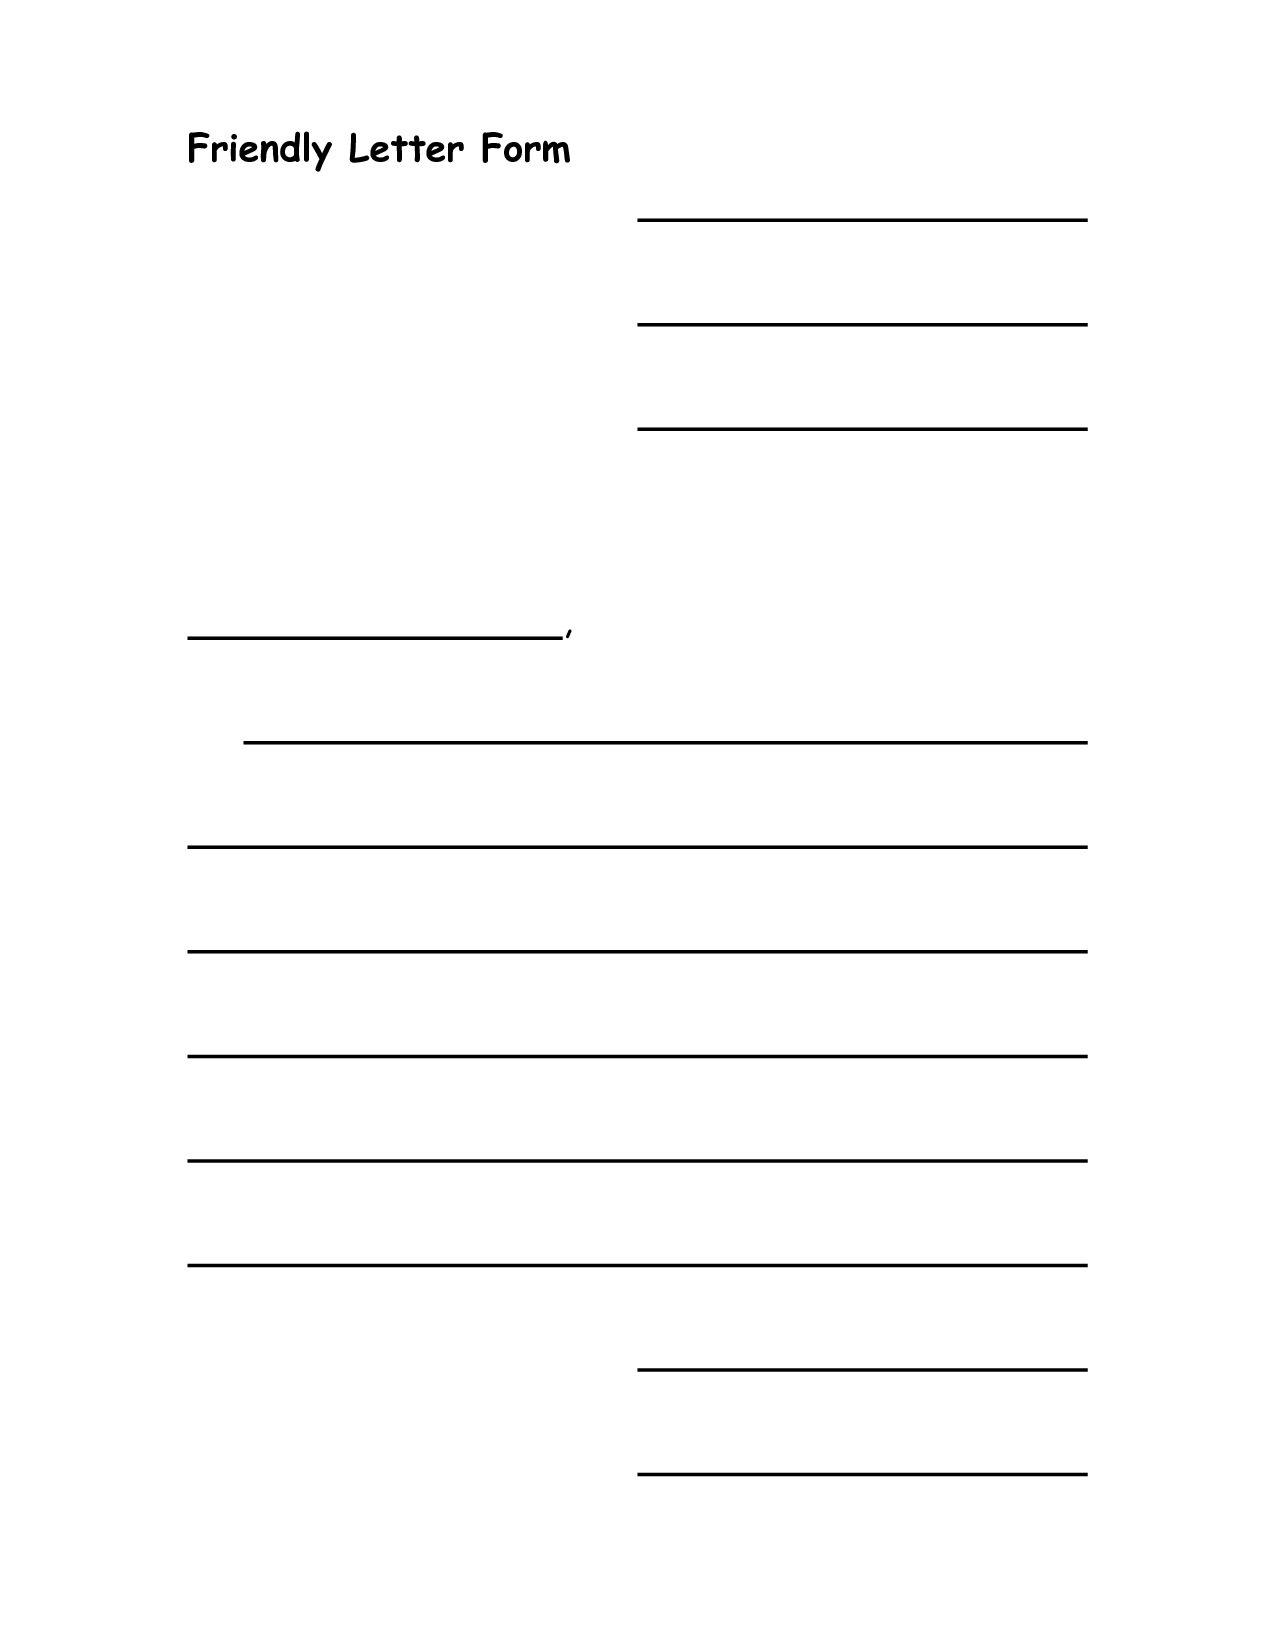 friendly letter format example